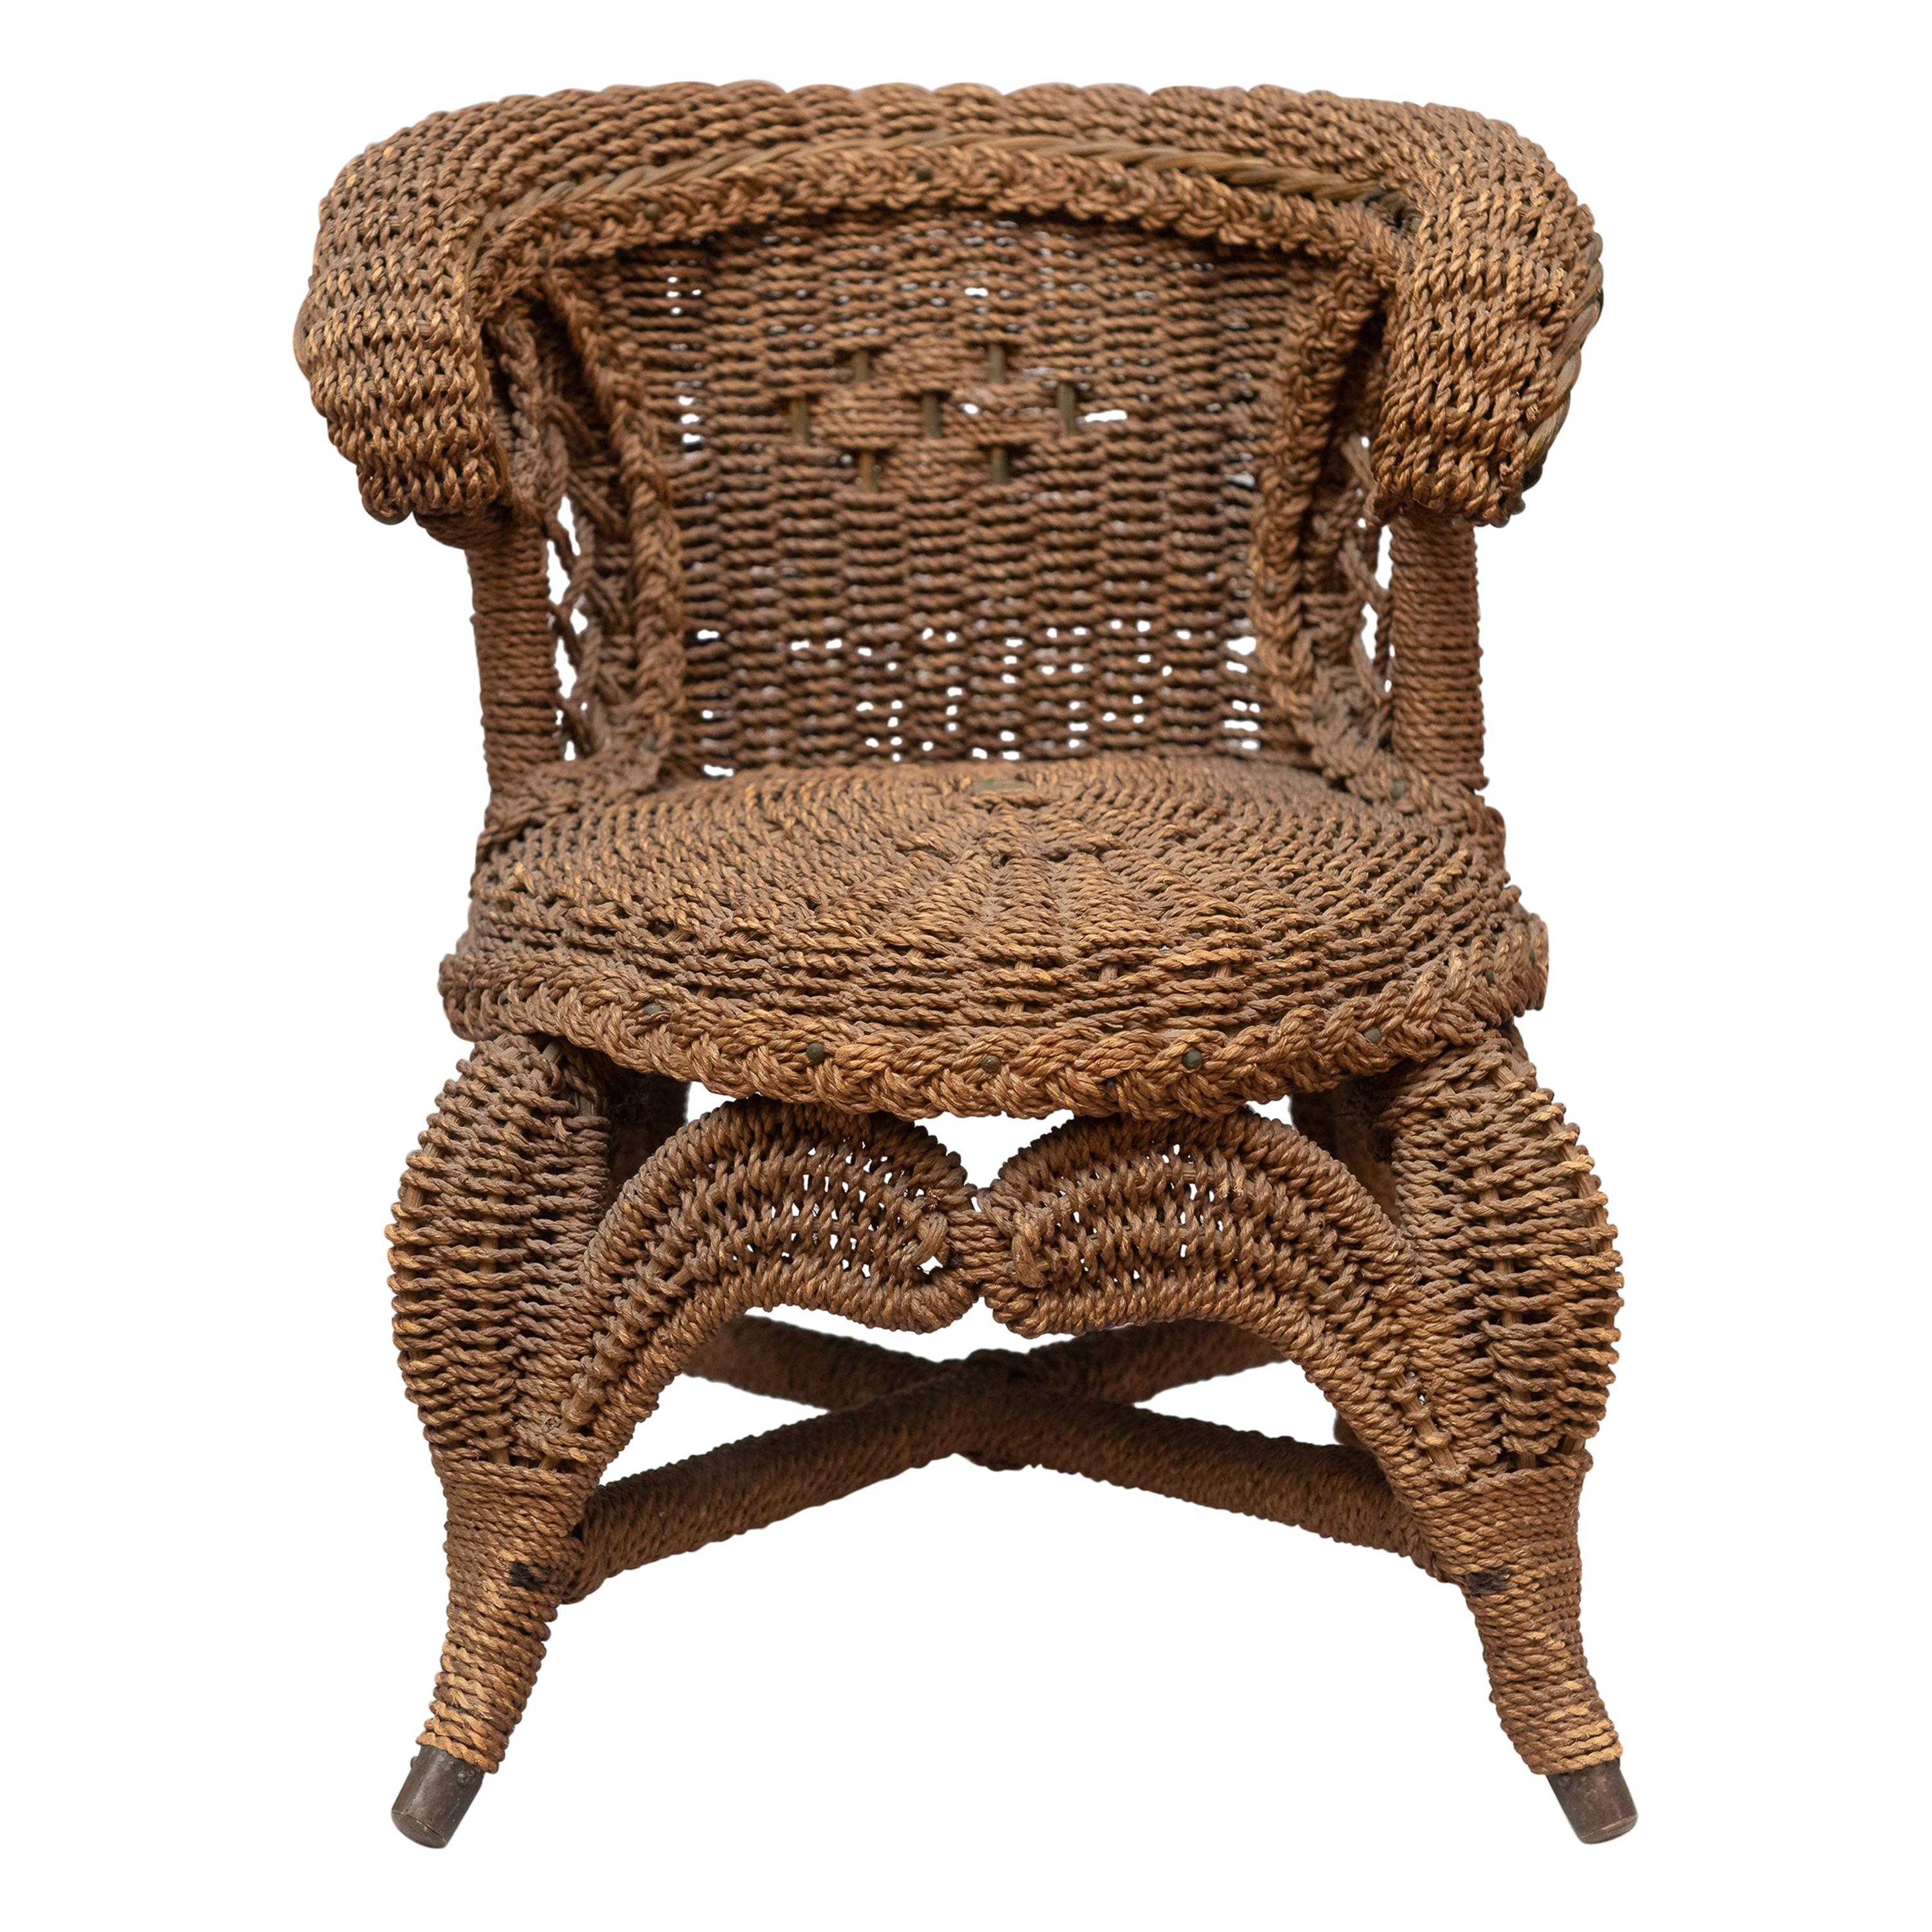 Miniature Wicker Chair, Possibly Salesman Sample, circa 1900